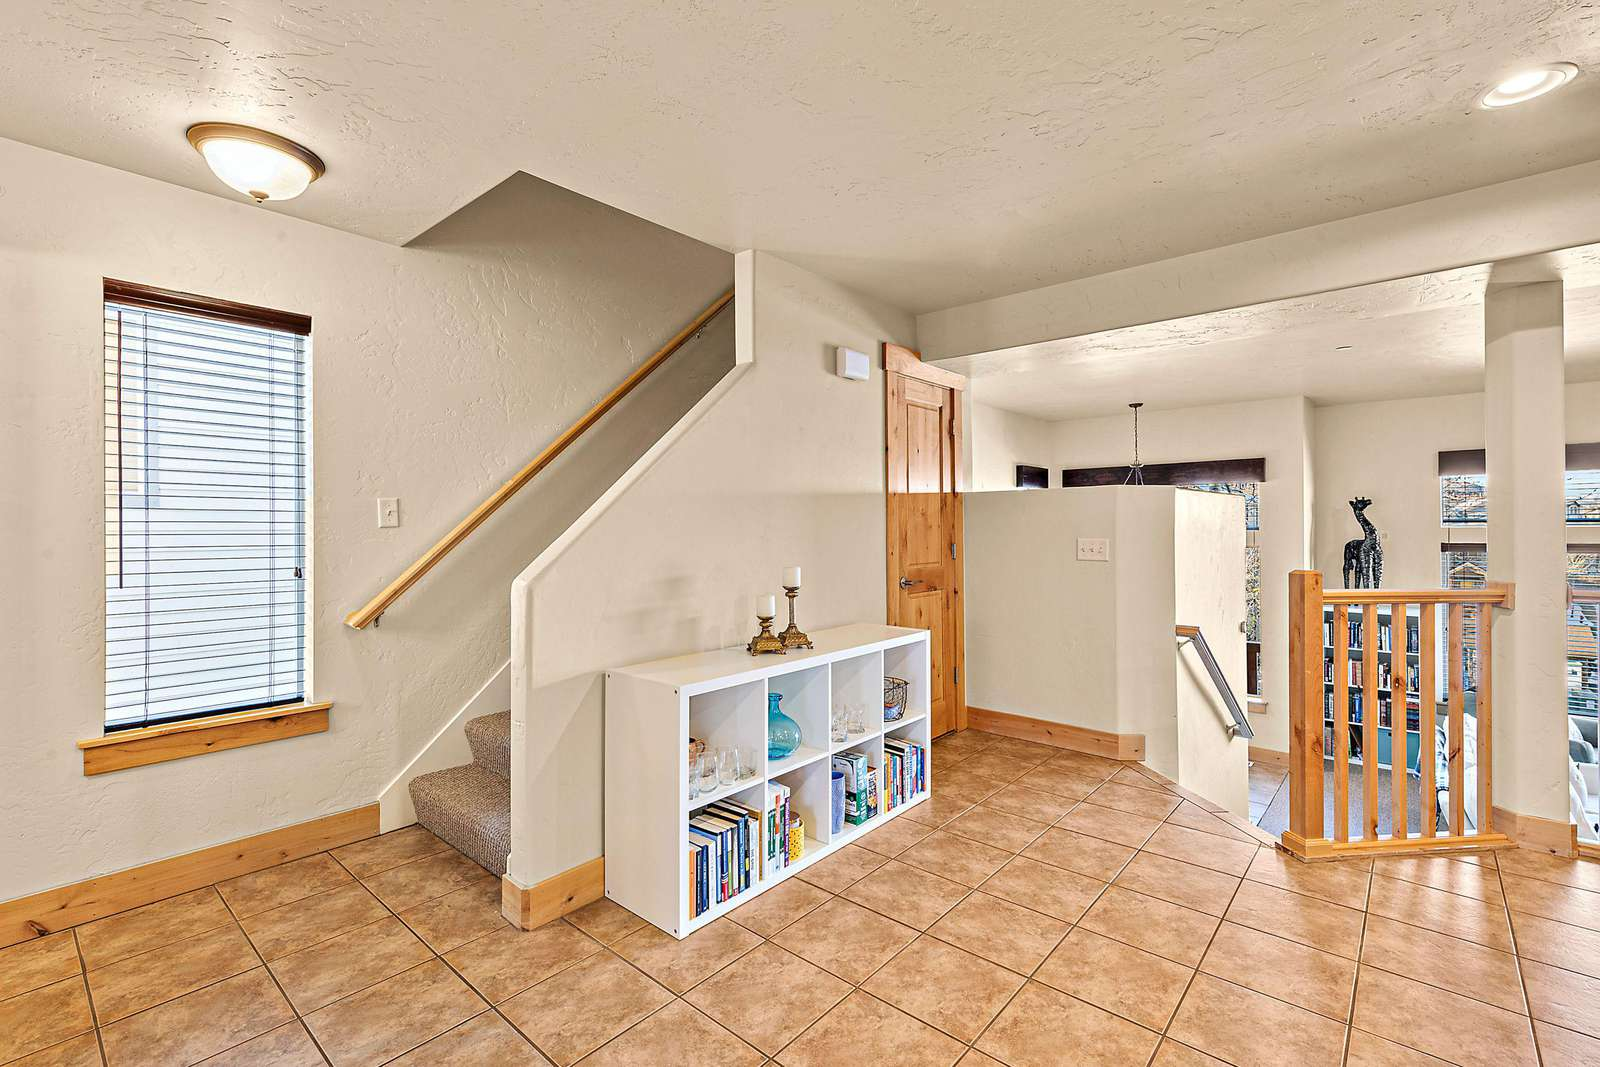 Staircase in kitchen area leading to top floor